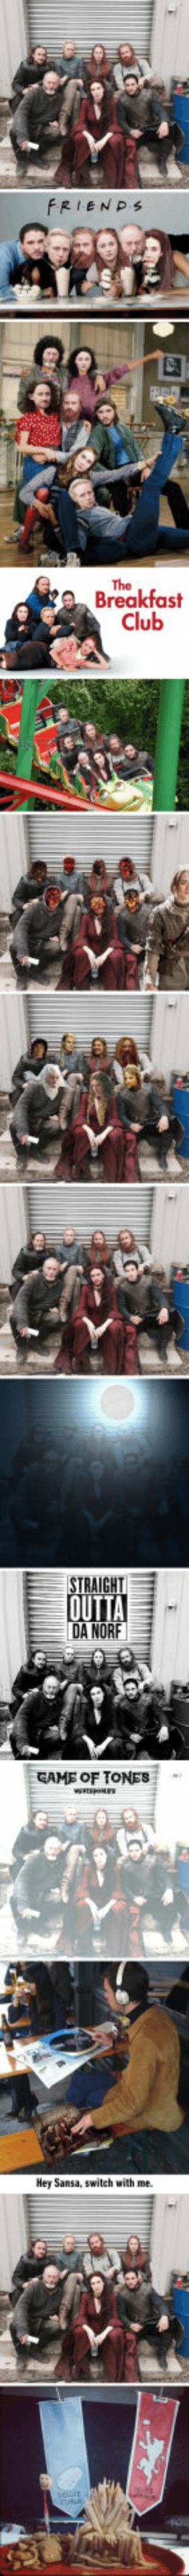 This photo of the Game of Thrones cast deserved to be photoshopped: FRIENPs  The  Breakfast  Club  STRAIGHT  DA NORF  GAME OF TONES  Hey Sansa, switch with me. This photo of the Game of Thrones cast deserved to be photoshopped